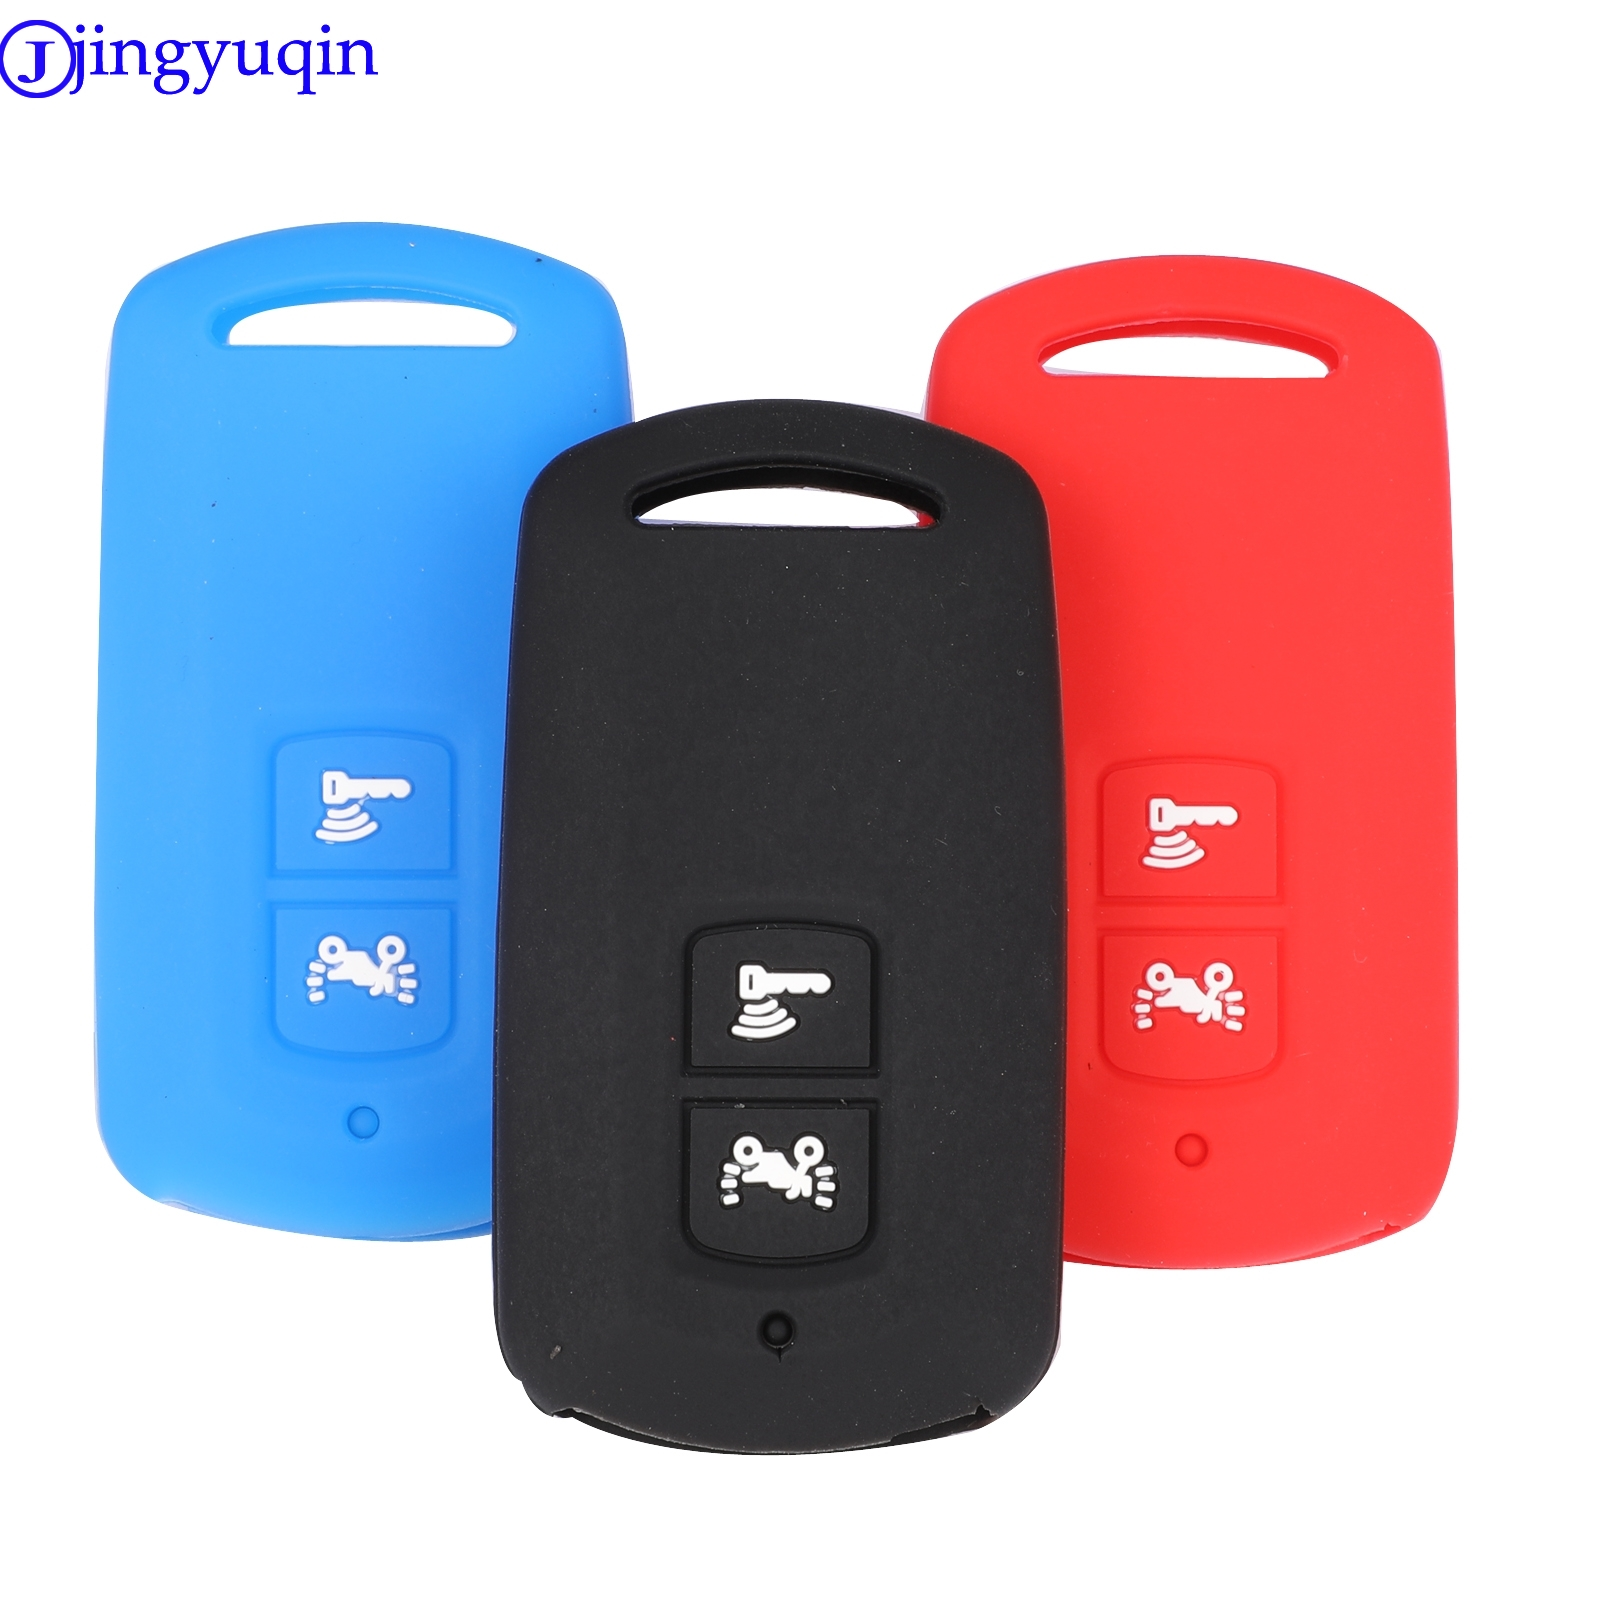 Jingyuqin Silicone Motor Key Cover Case Shell For Honda PCX 150 Hybrid X-ADV SH125 Scoopy SH300 Forza 125 2button Key